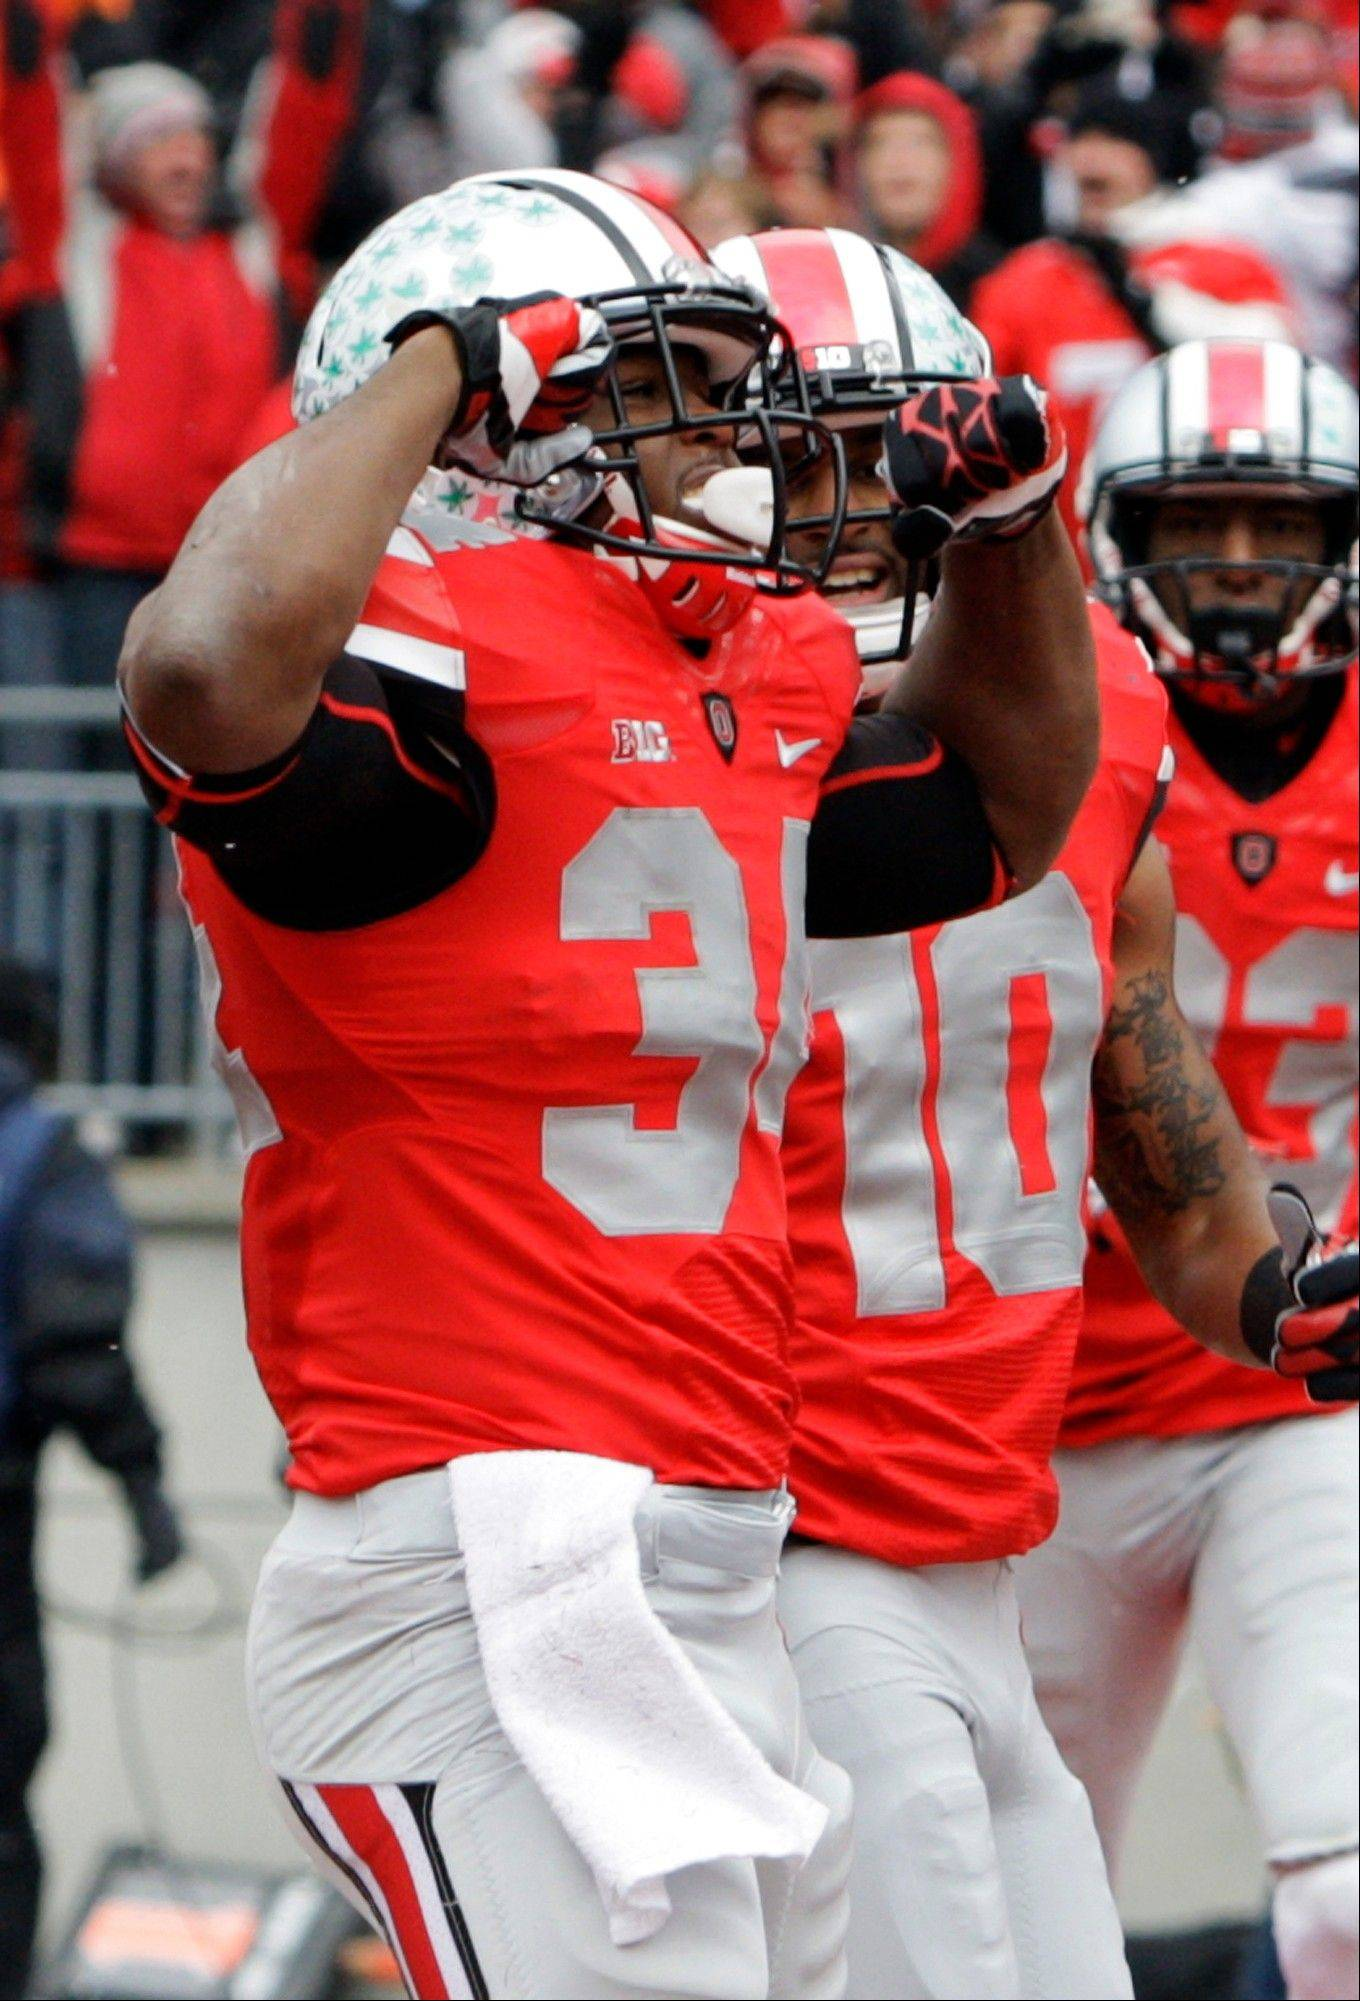 Ohio State running back Carlos Hyde celebrates after a 3-yard touchdown run against Michigan Saturday during the first quarter in Columbus.